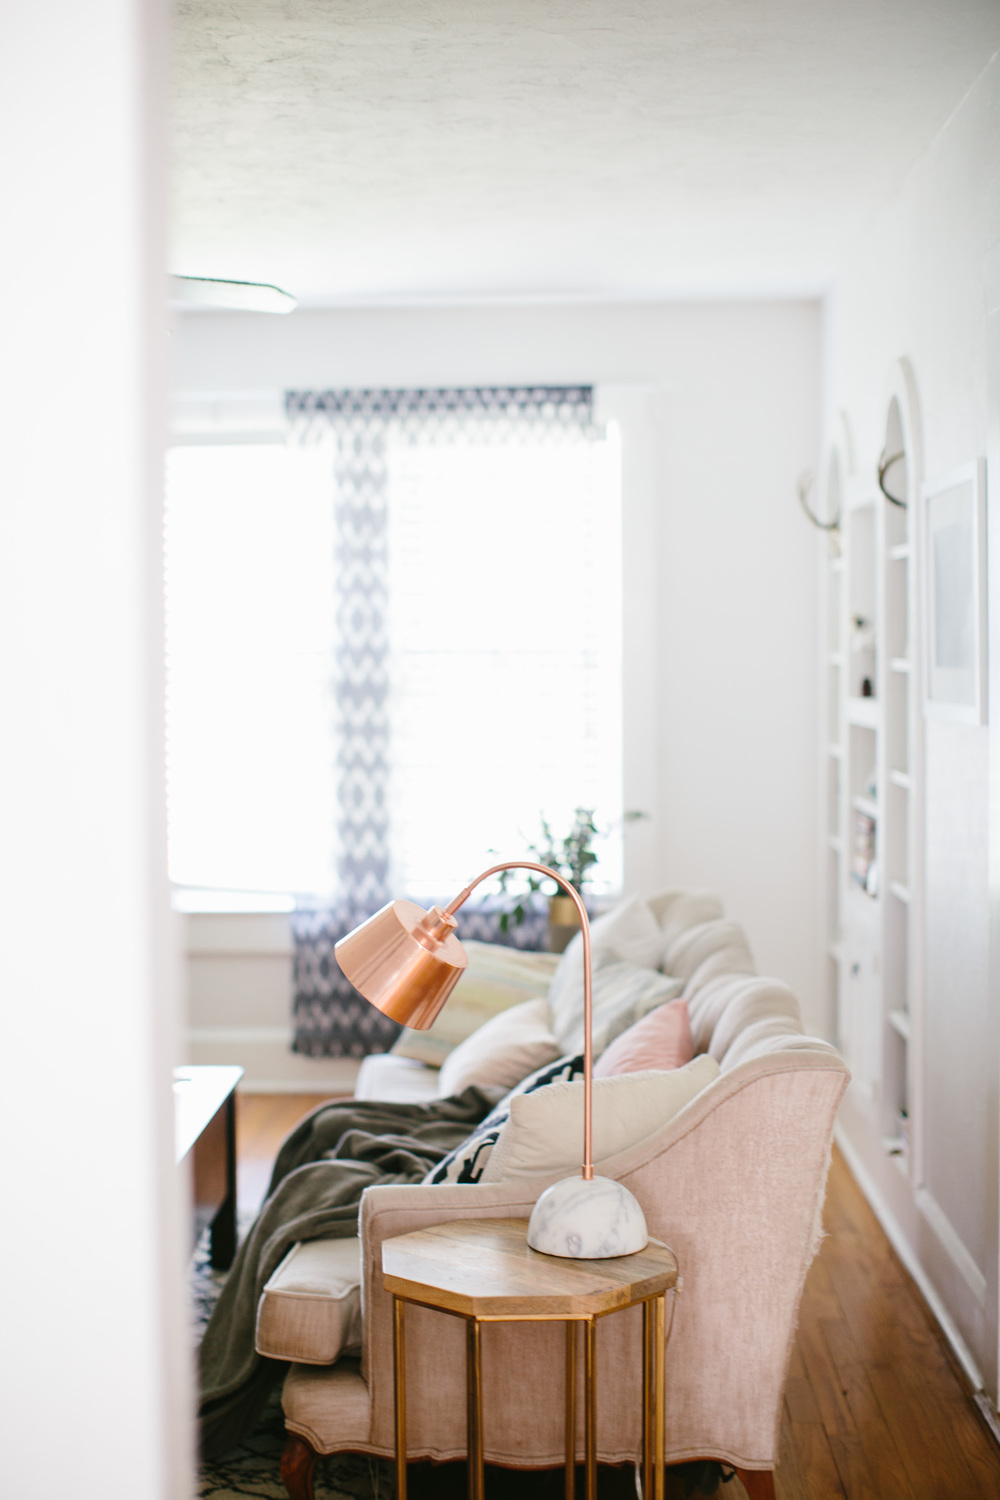 Living room inspiration | Florida bungalow styling | Home decor | Shannon Kirsten Home Tour | http://www.theschoolofstyling.com